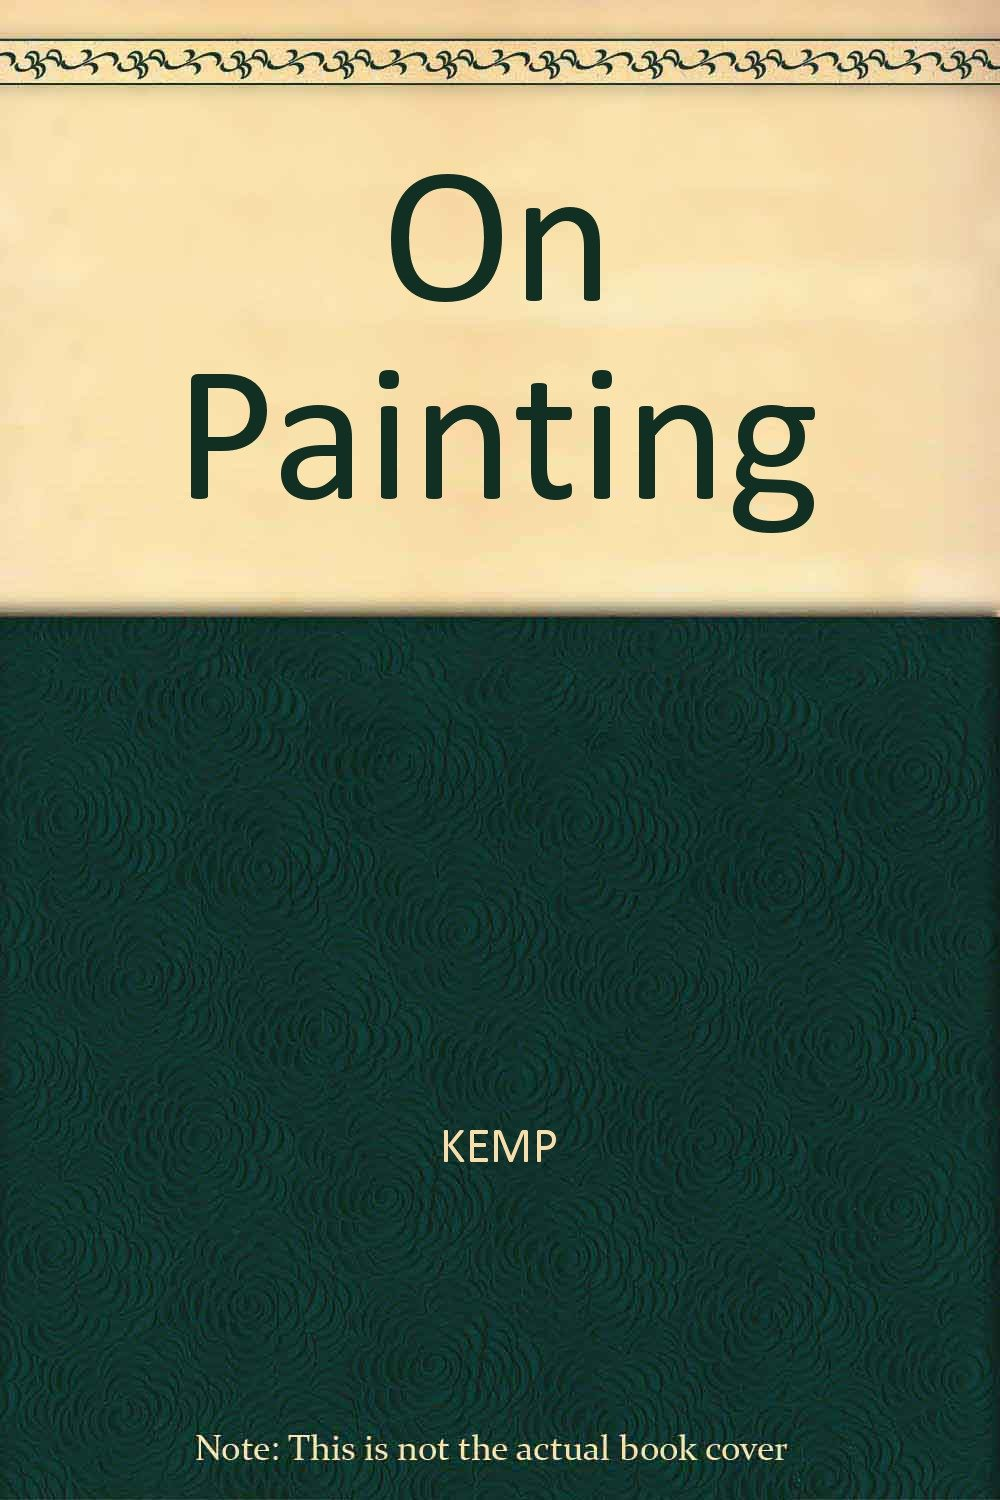 On Painting